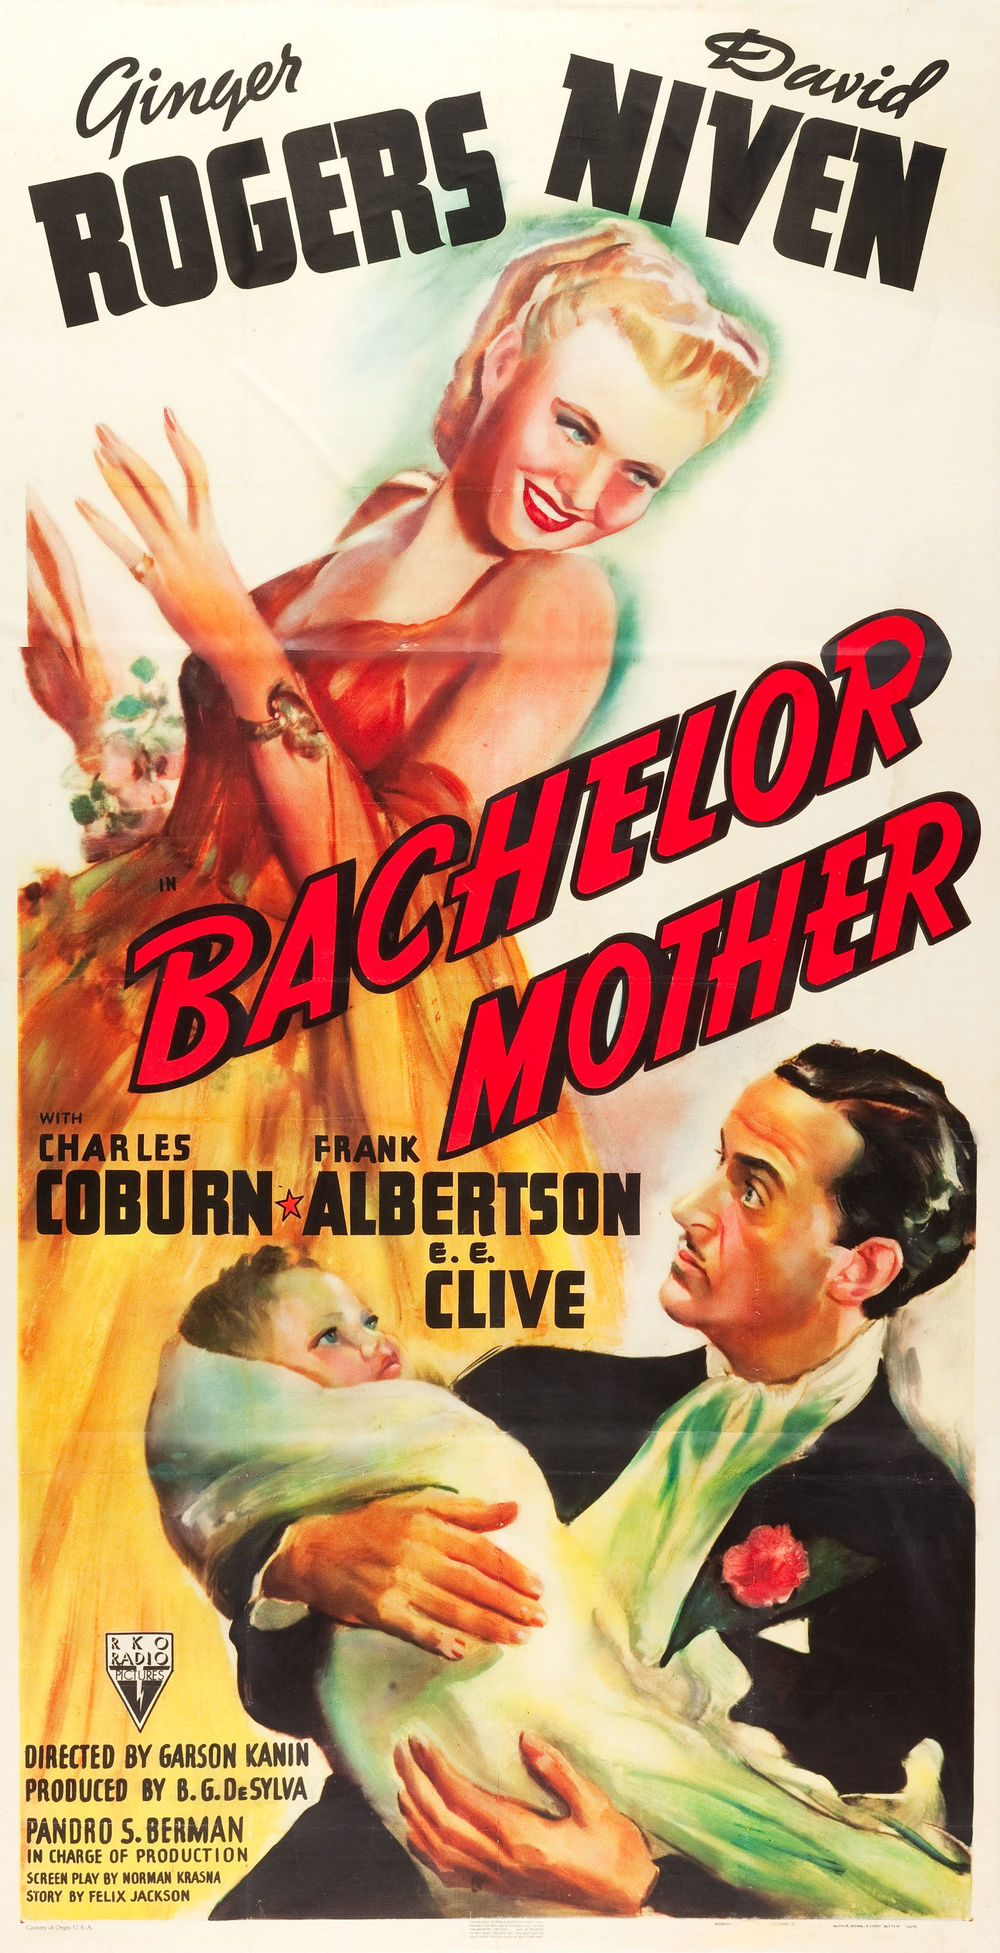 Bachelor Mother (1939) also takes place over the Christmas Holidays, beginning in the toy department of a department store on Christmas Eve --- just before Ginger Rogers receives her pink slip and finds herself mistaken for the mother of an abandoned baby. Again, plenty of snowy New York scenes. Funny and full of charm.